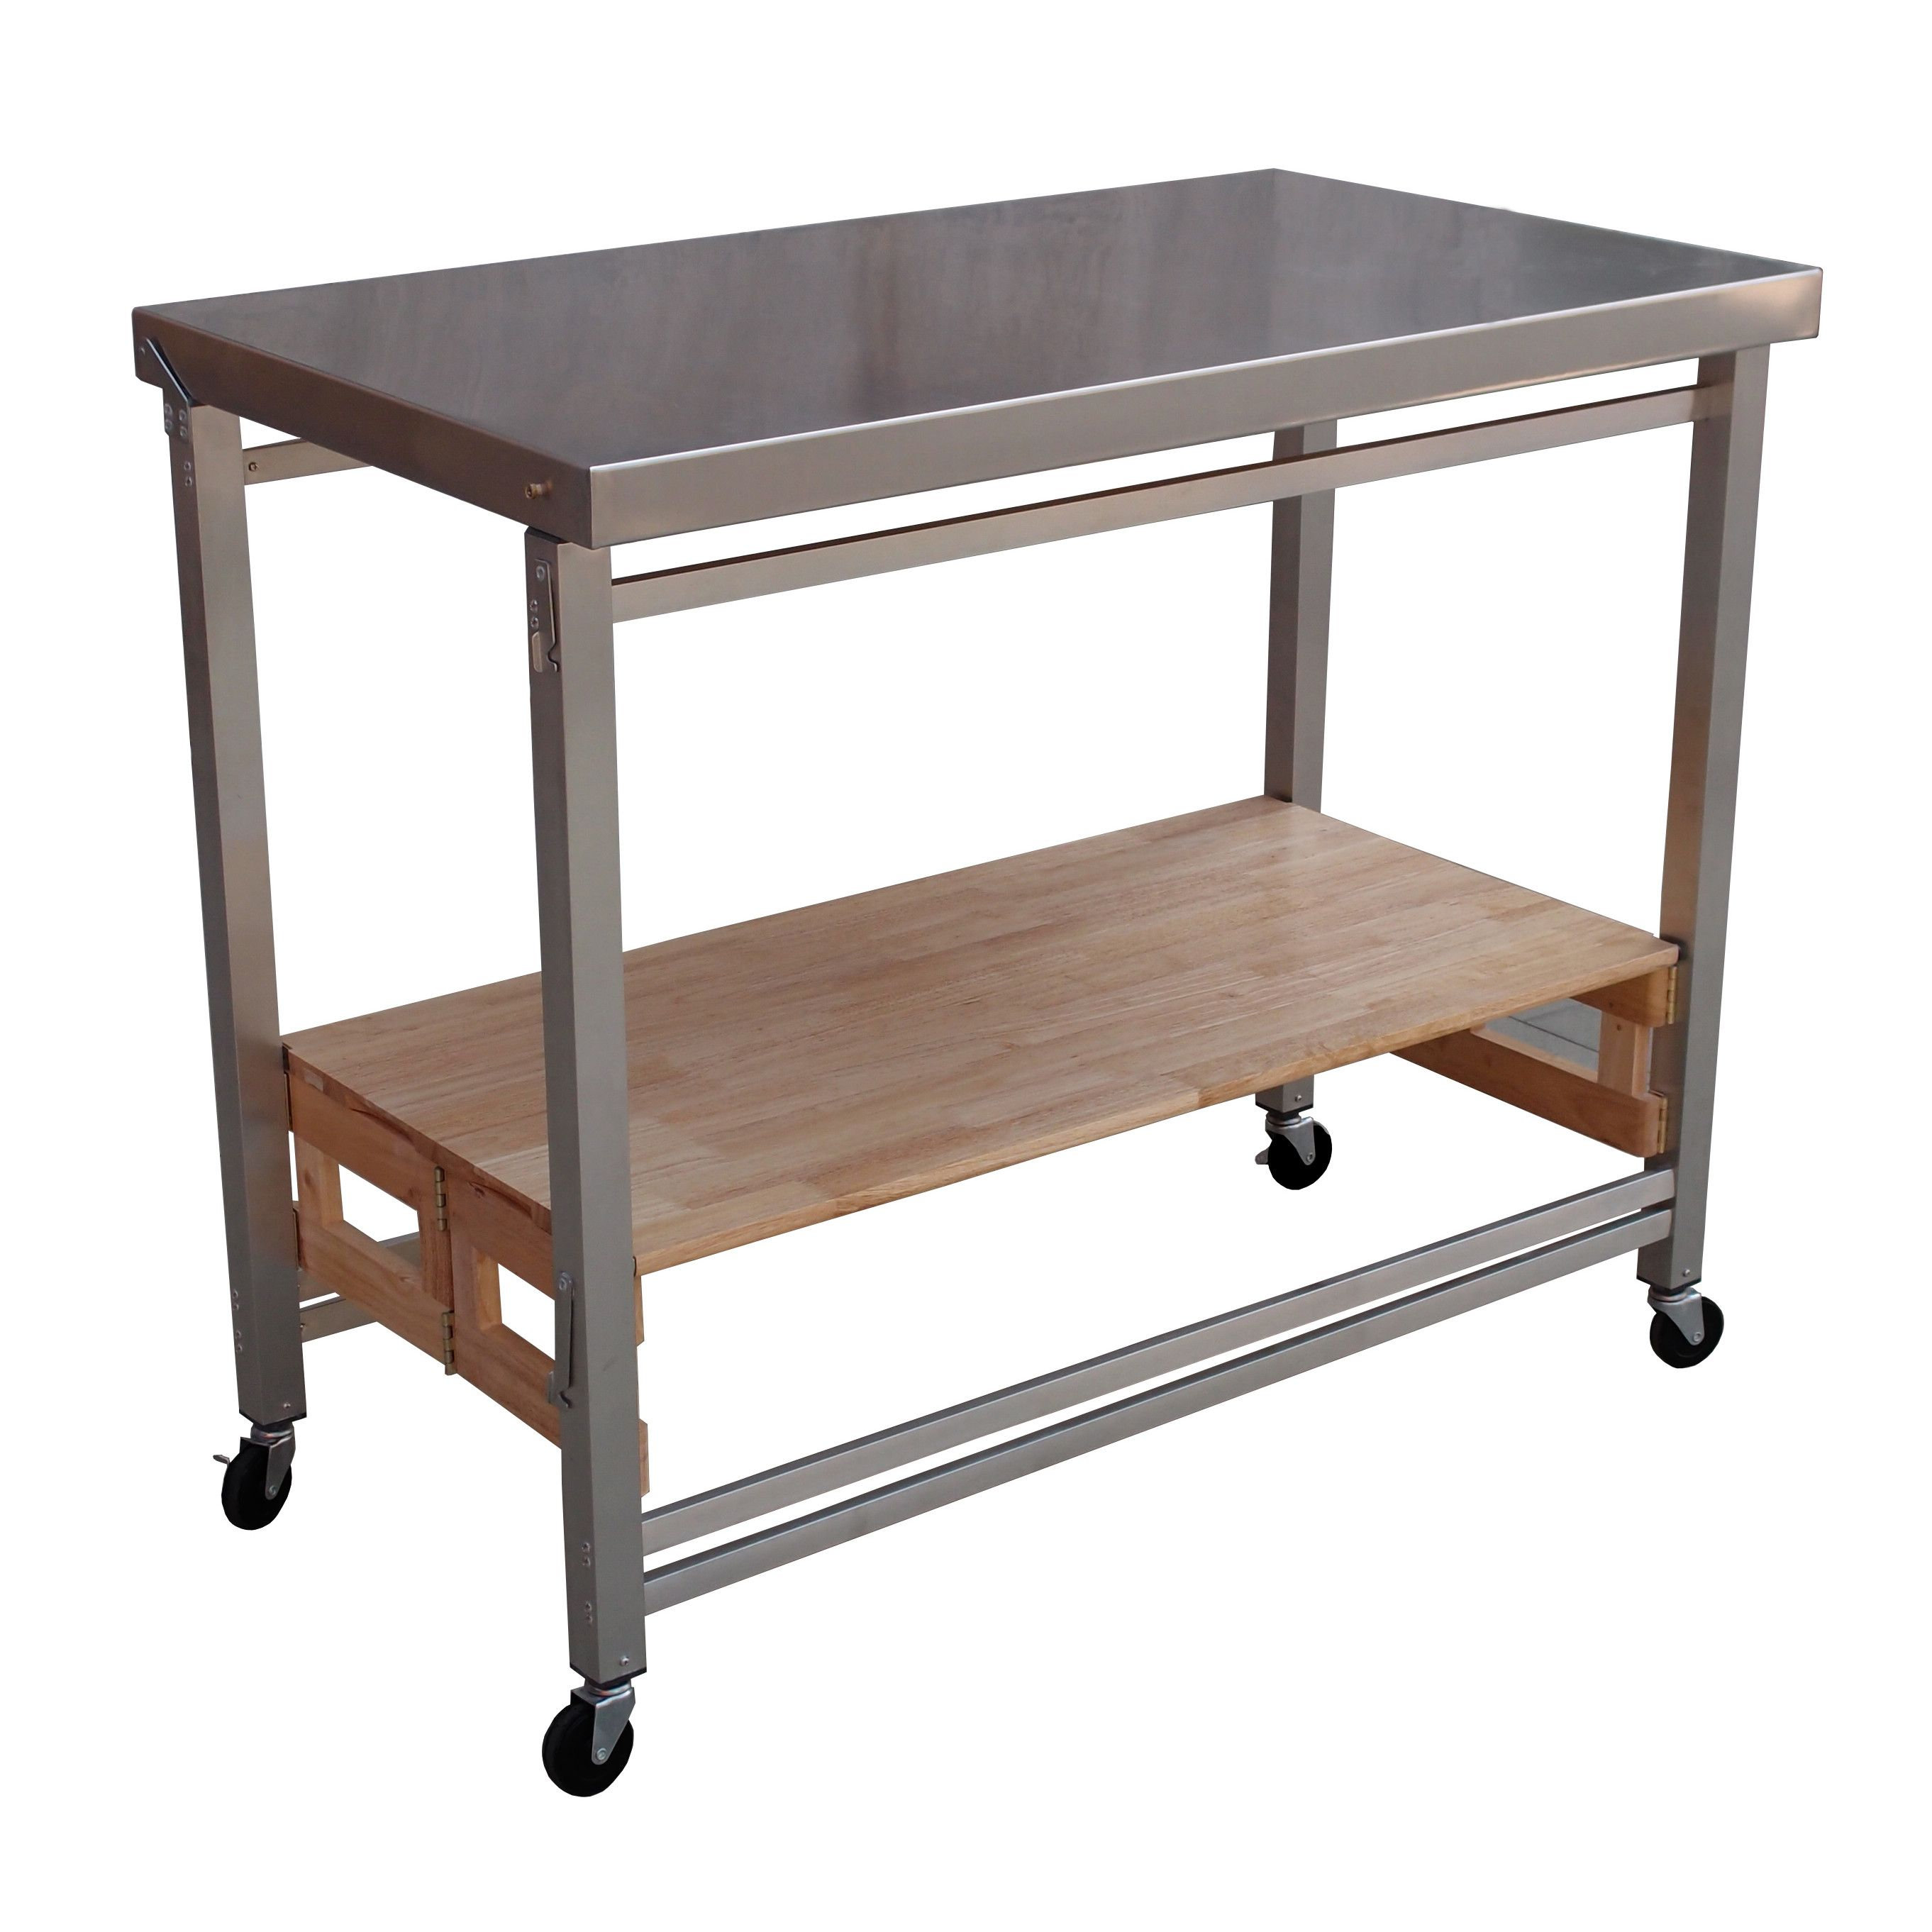 Oasis Concepts Folding Prep Table with Stainless Steel Top | Future ...